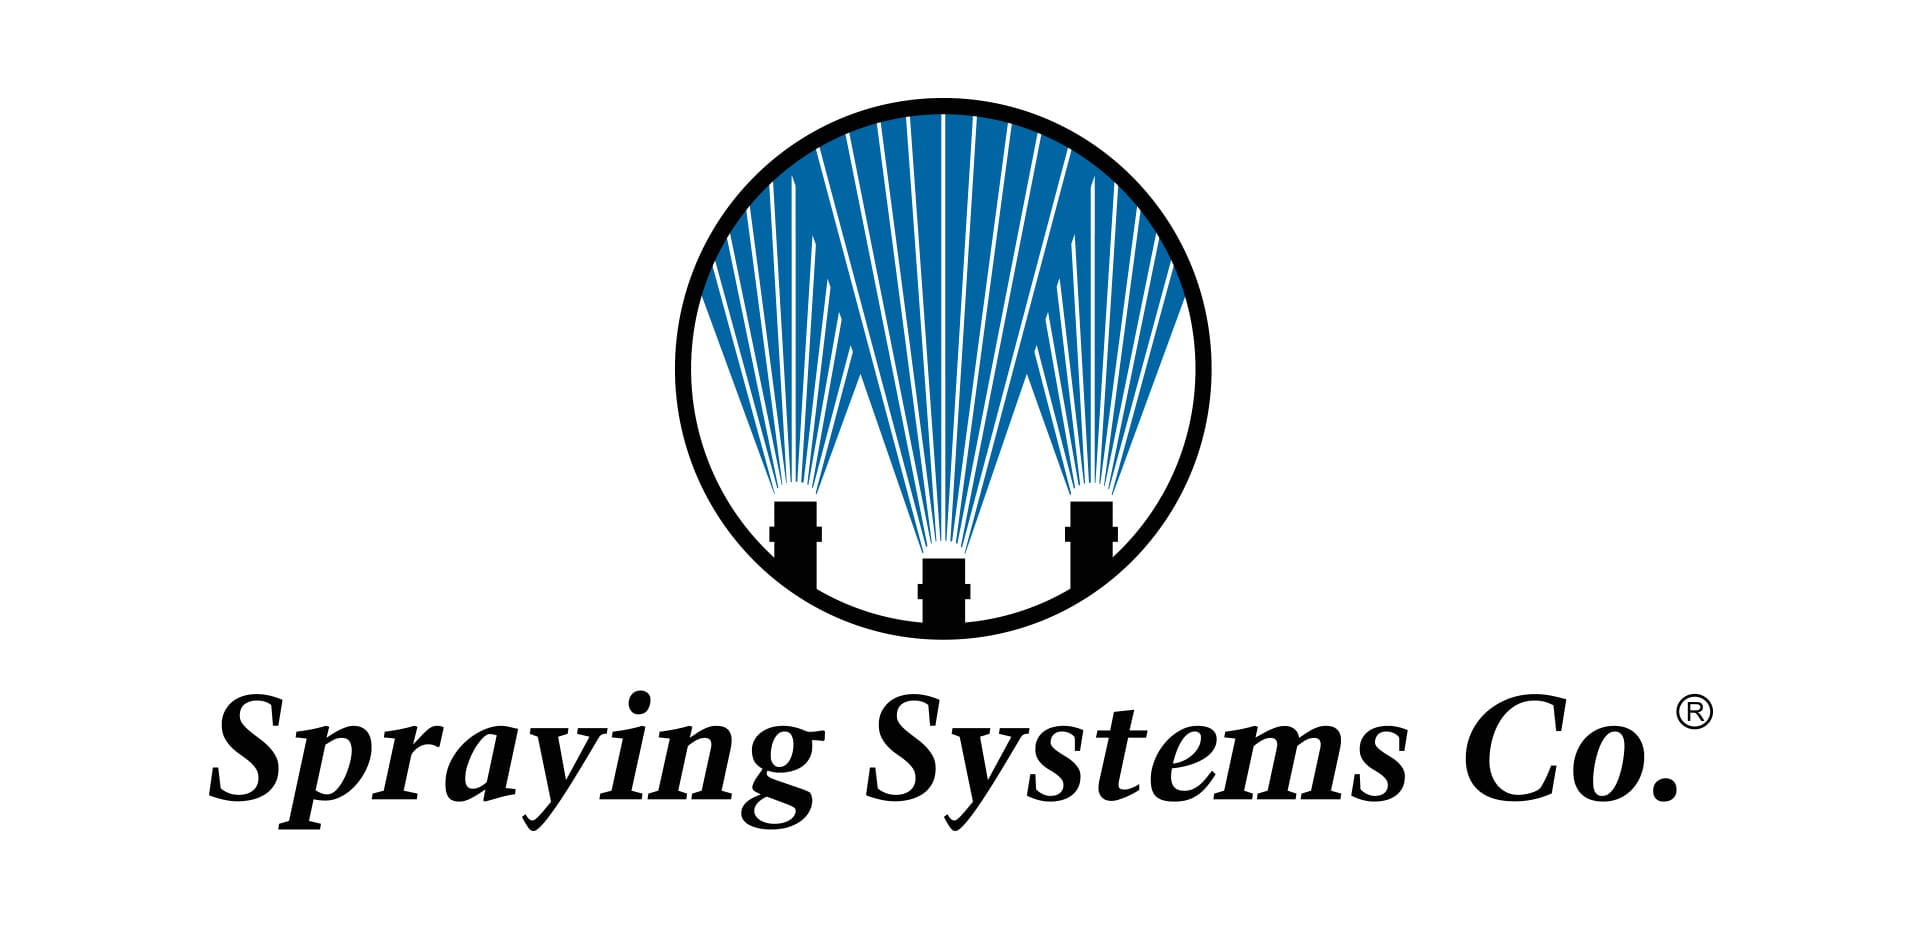 Spraying Systems logo